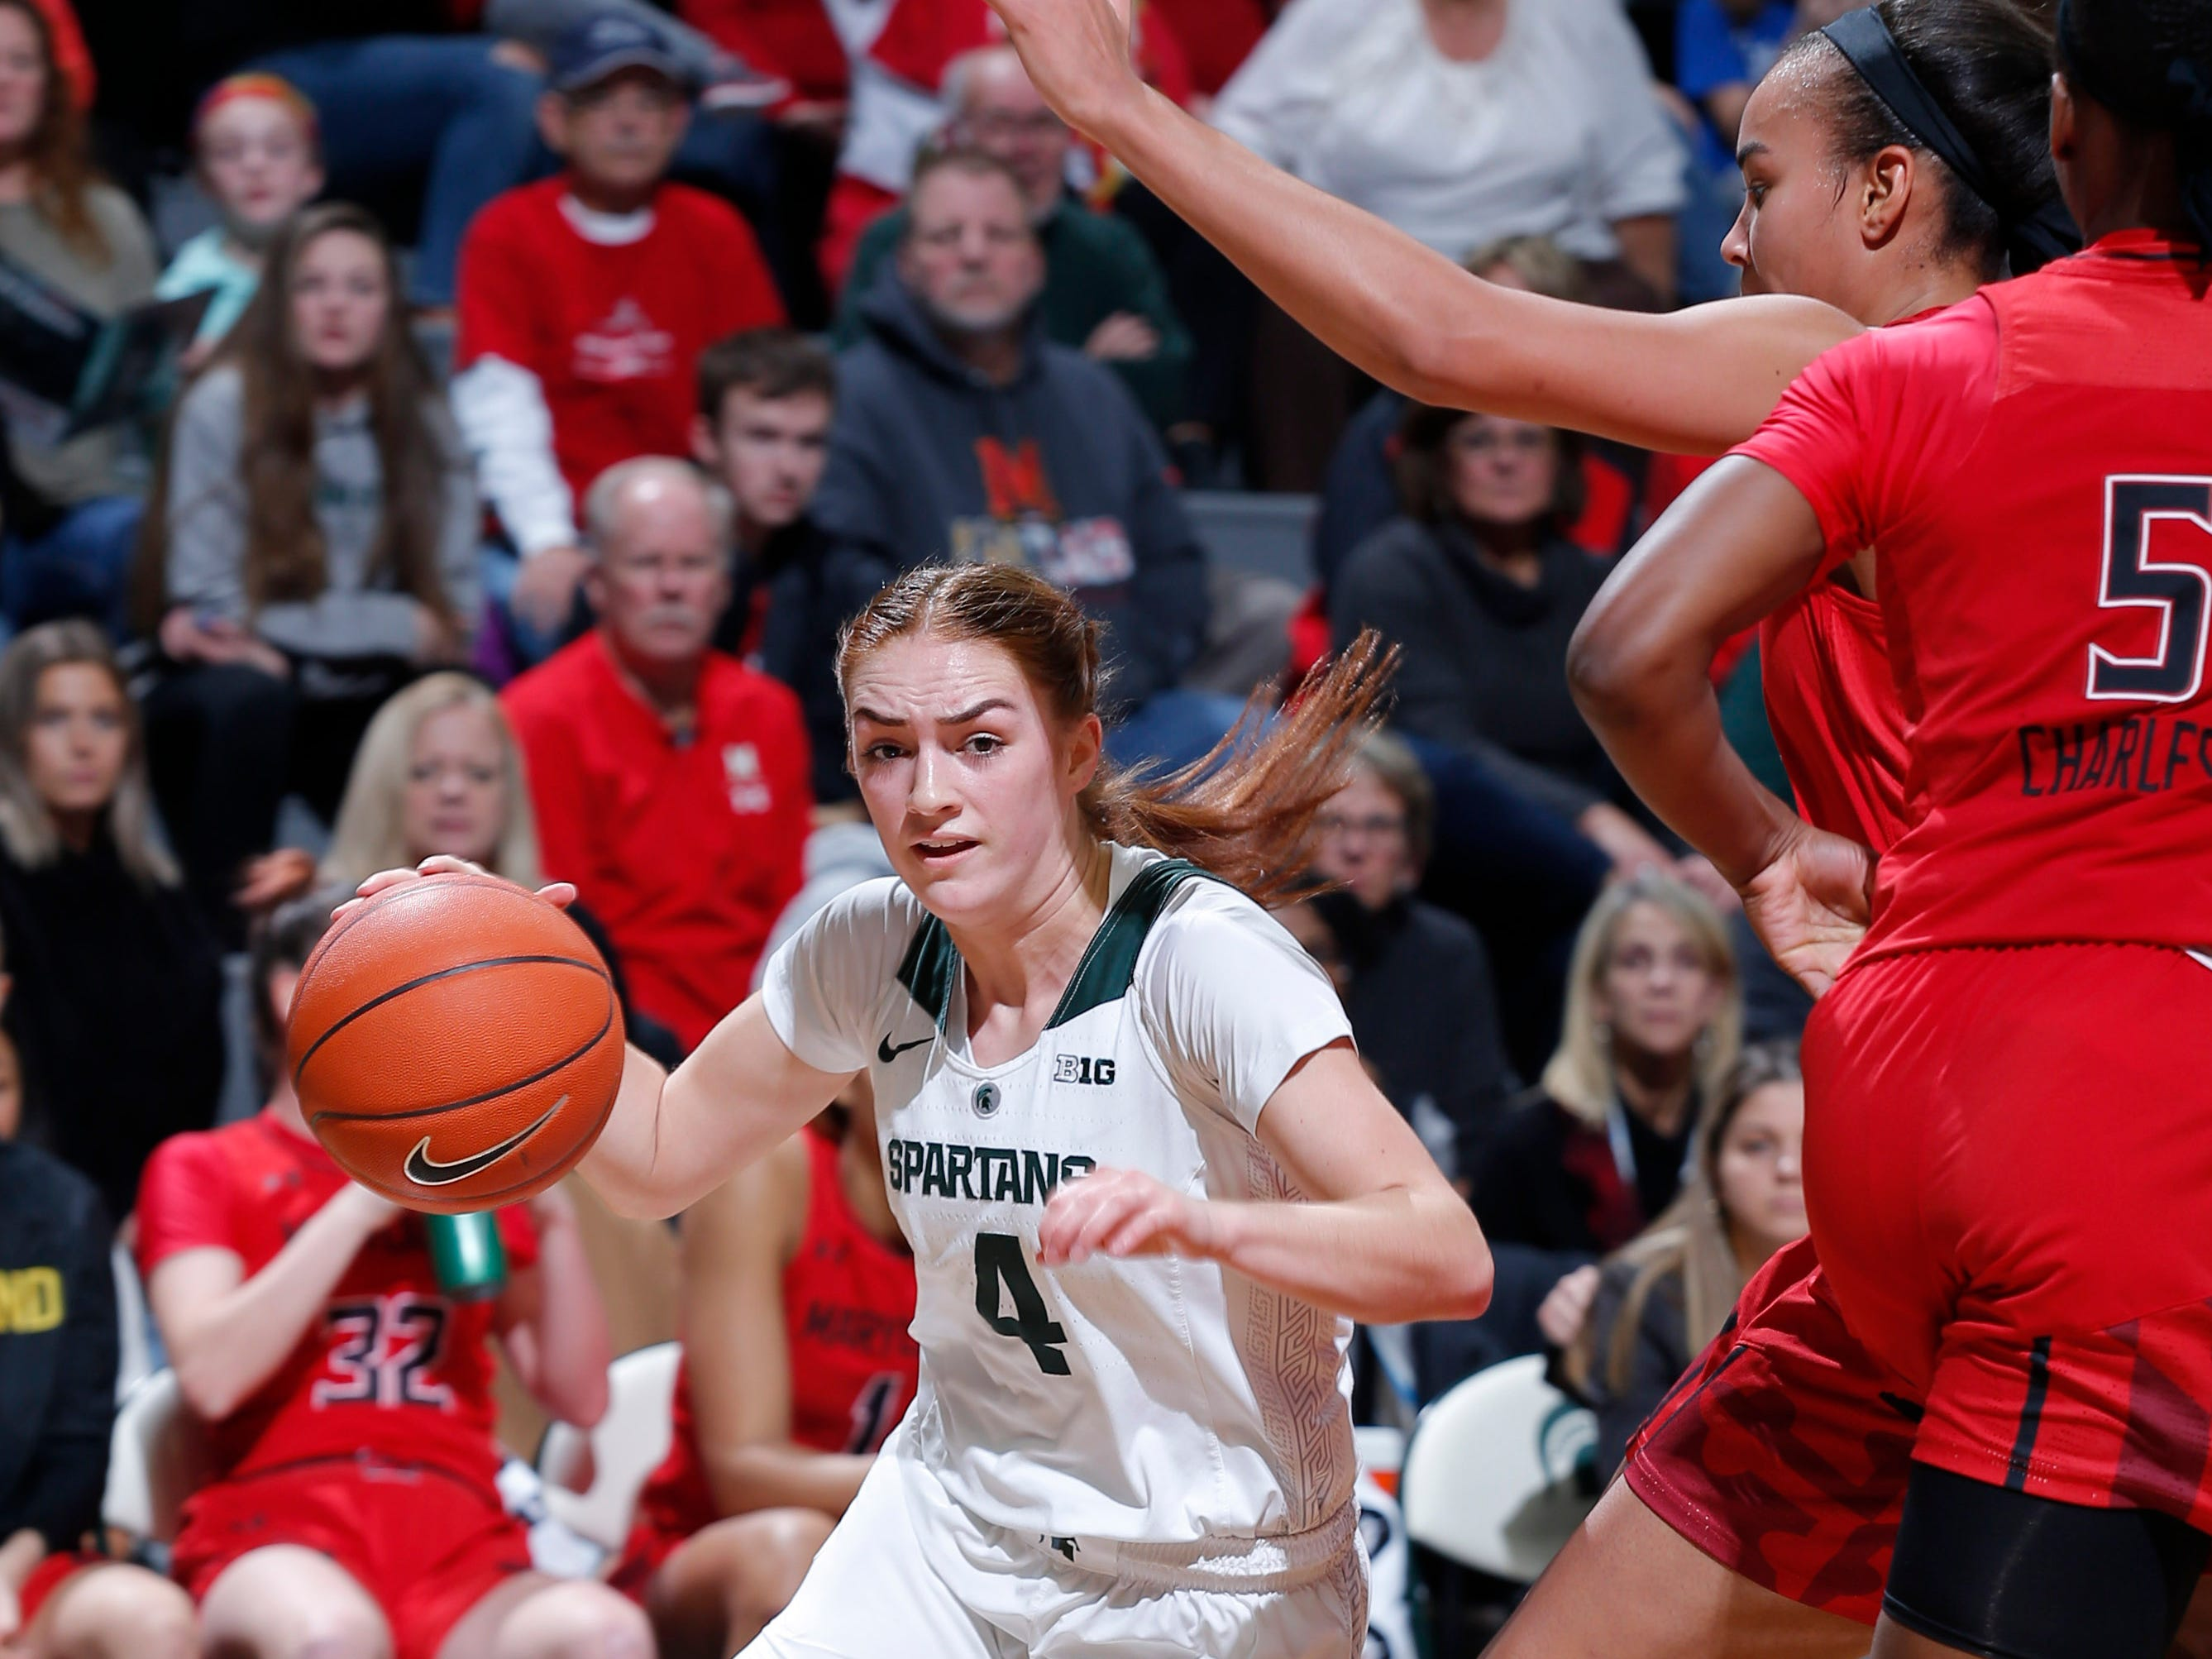 Michigan State's Taryn McCutcheon, left, drives against Maryland, Thursday, Jan. 17, 2019, in East Lansing, Mich.